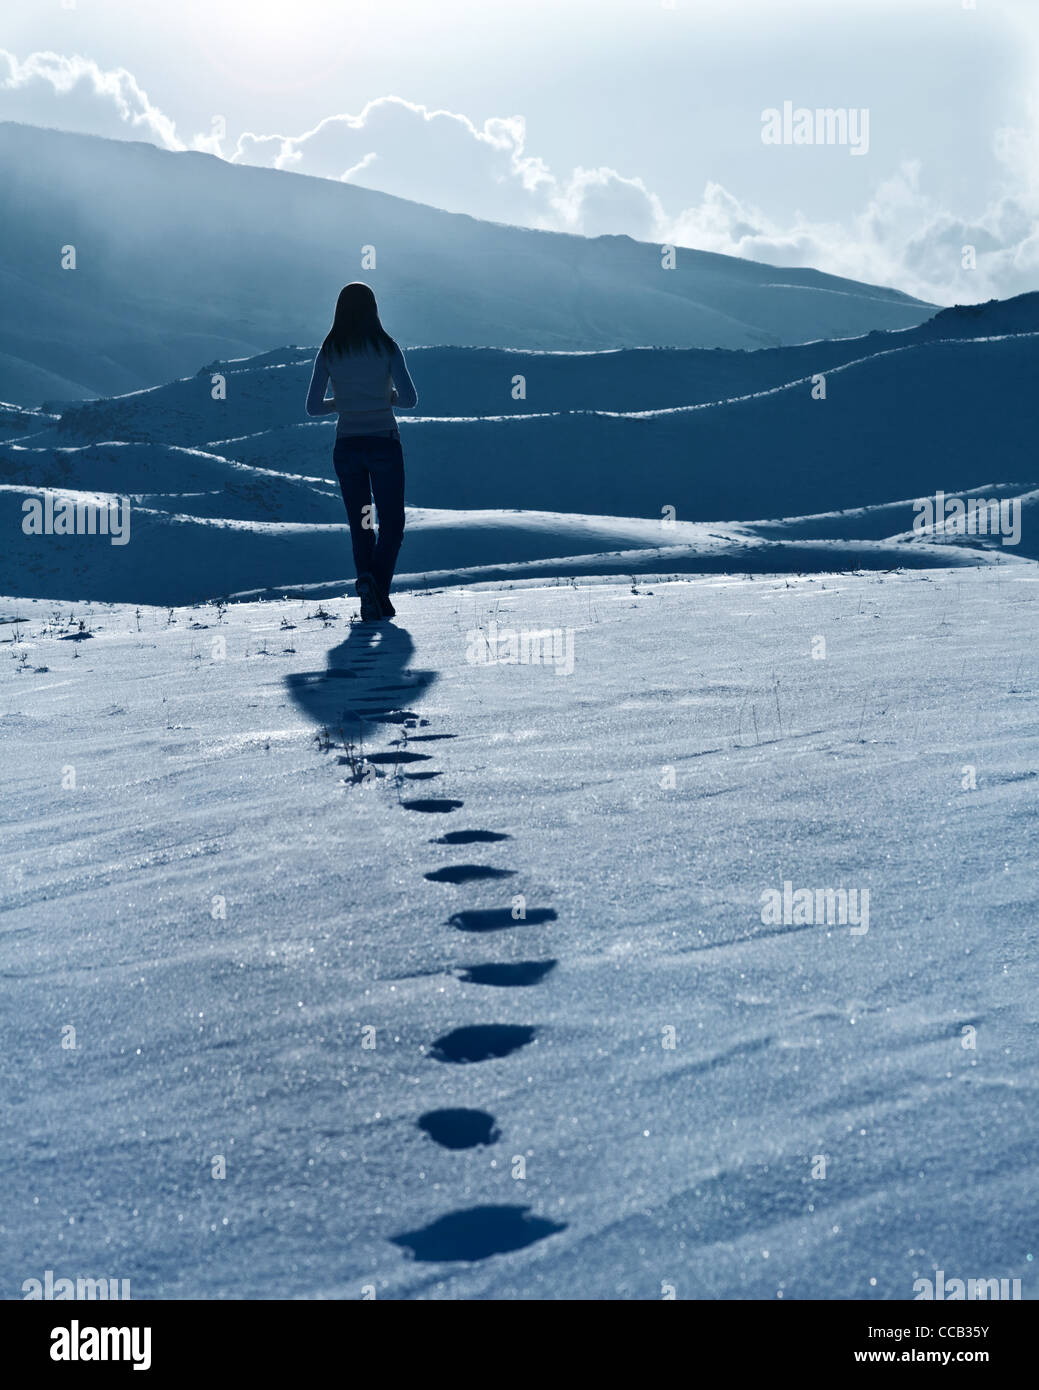 Lonely woman silhouette at winter mountains, footprints on the snow, enjoying wintertime nature view,one girl walking - Stock Image